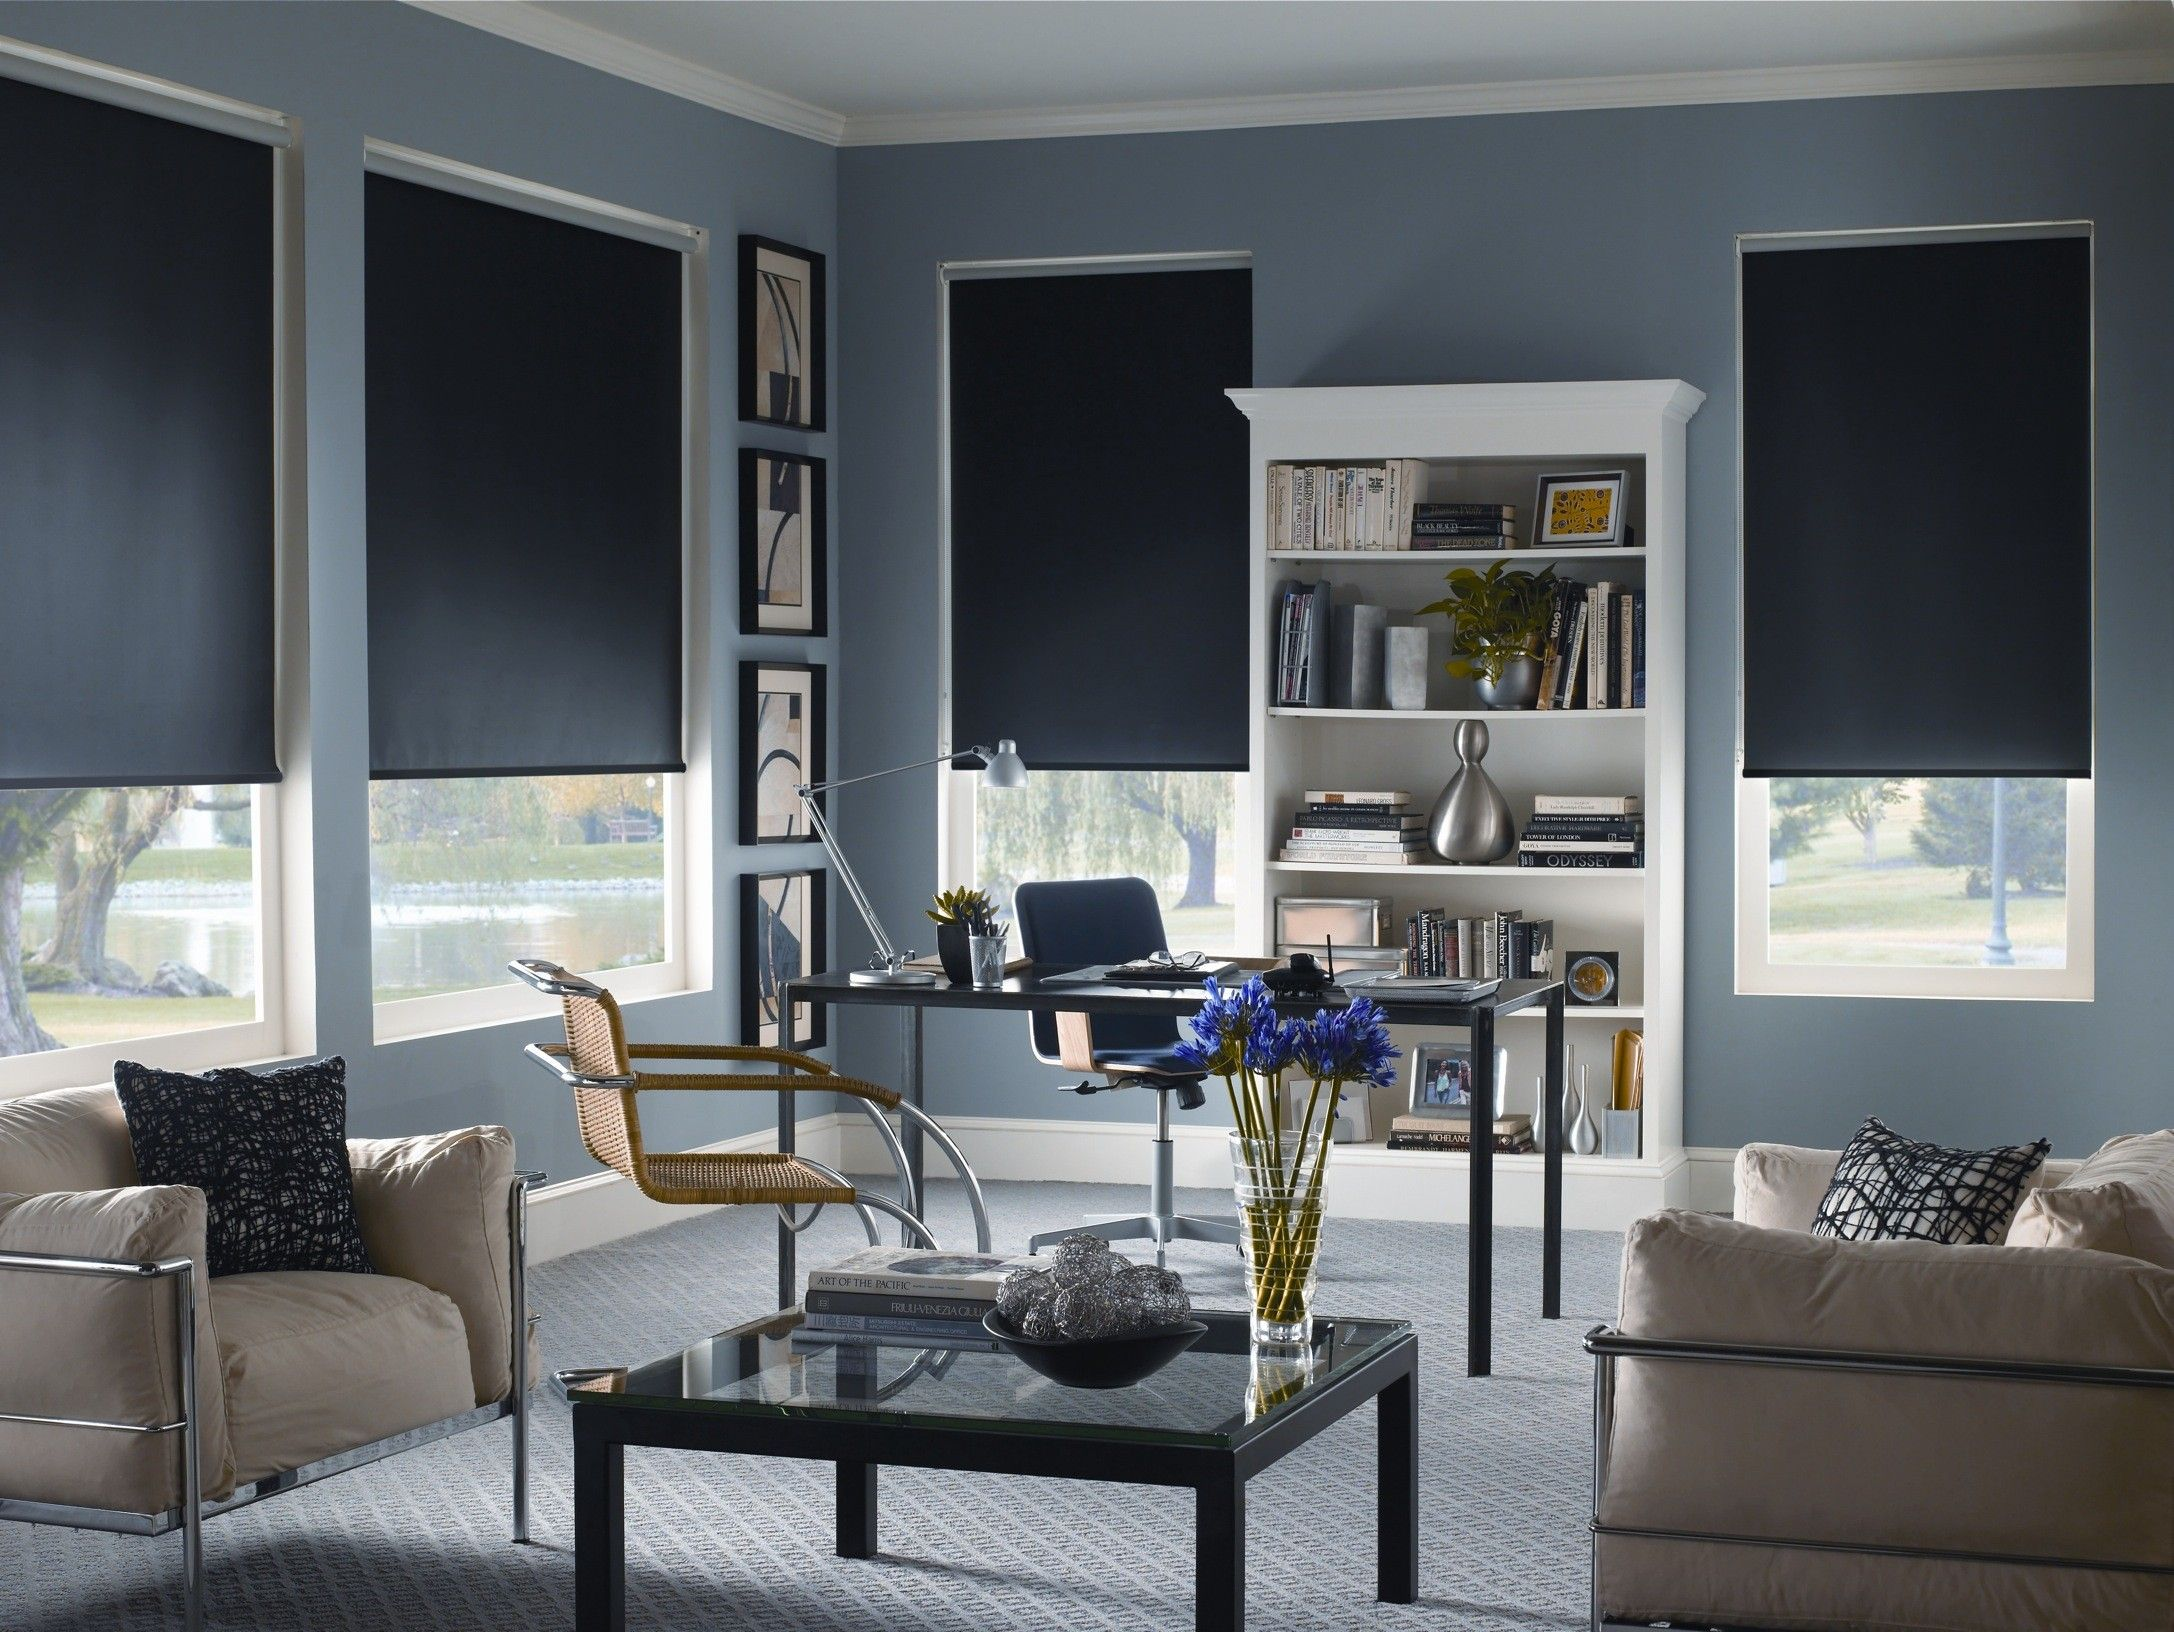 Interior Design Black Roller Shades Blackout Blinds